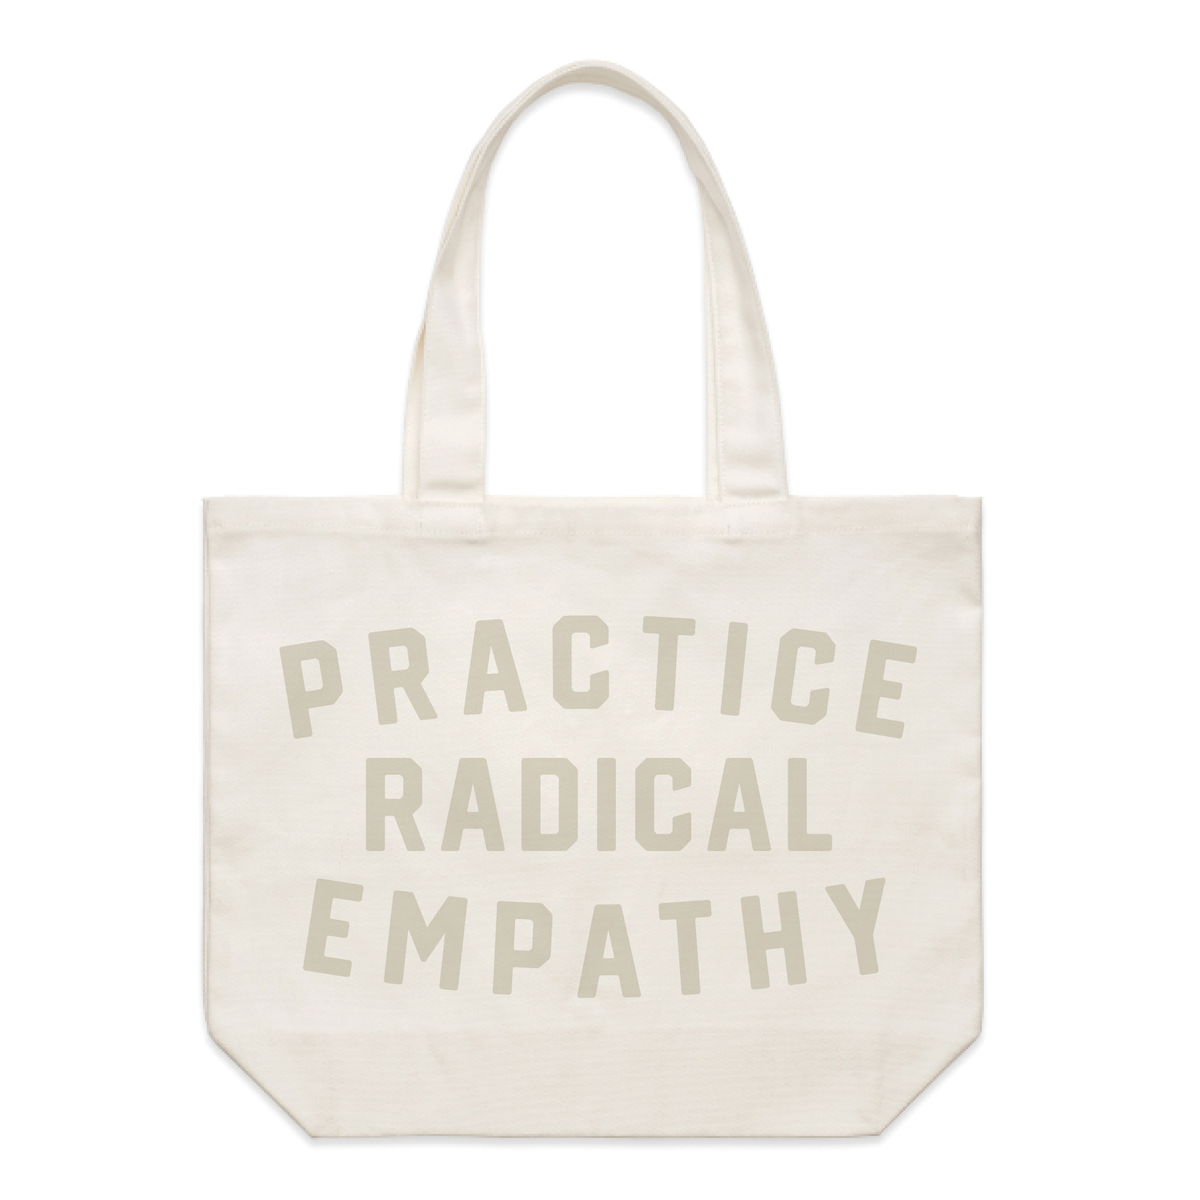 Practice Radical Empathy Tote Bag - Natural